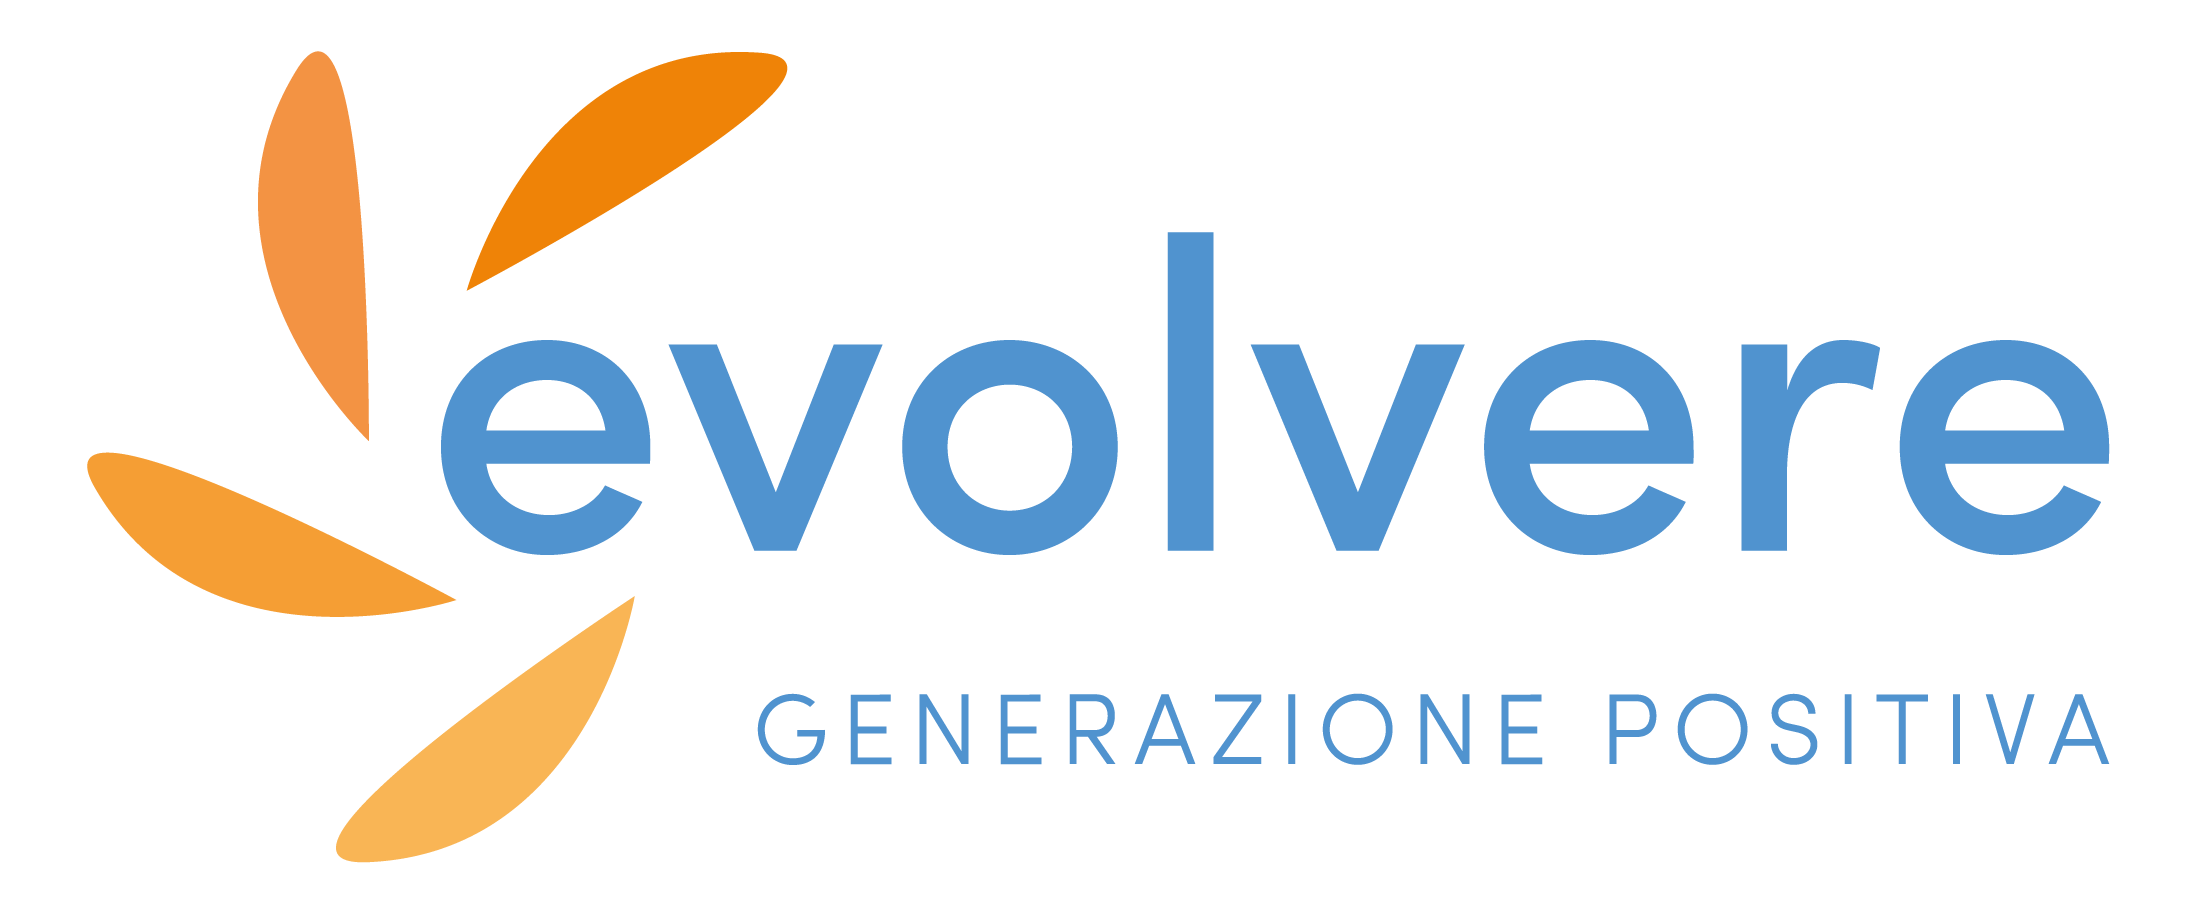 Logo for Evolvere S.p.A.